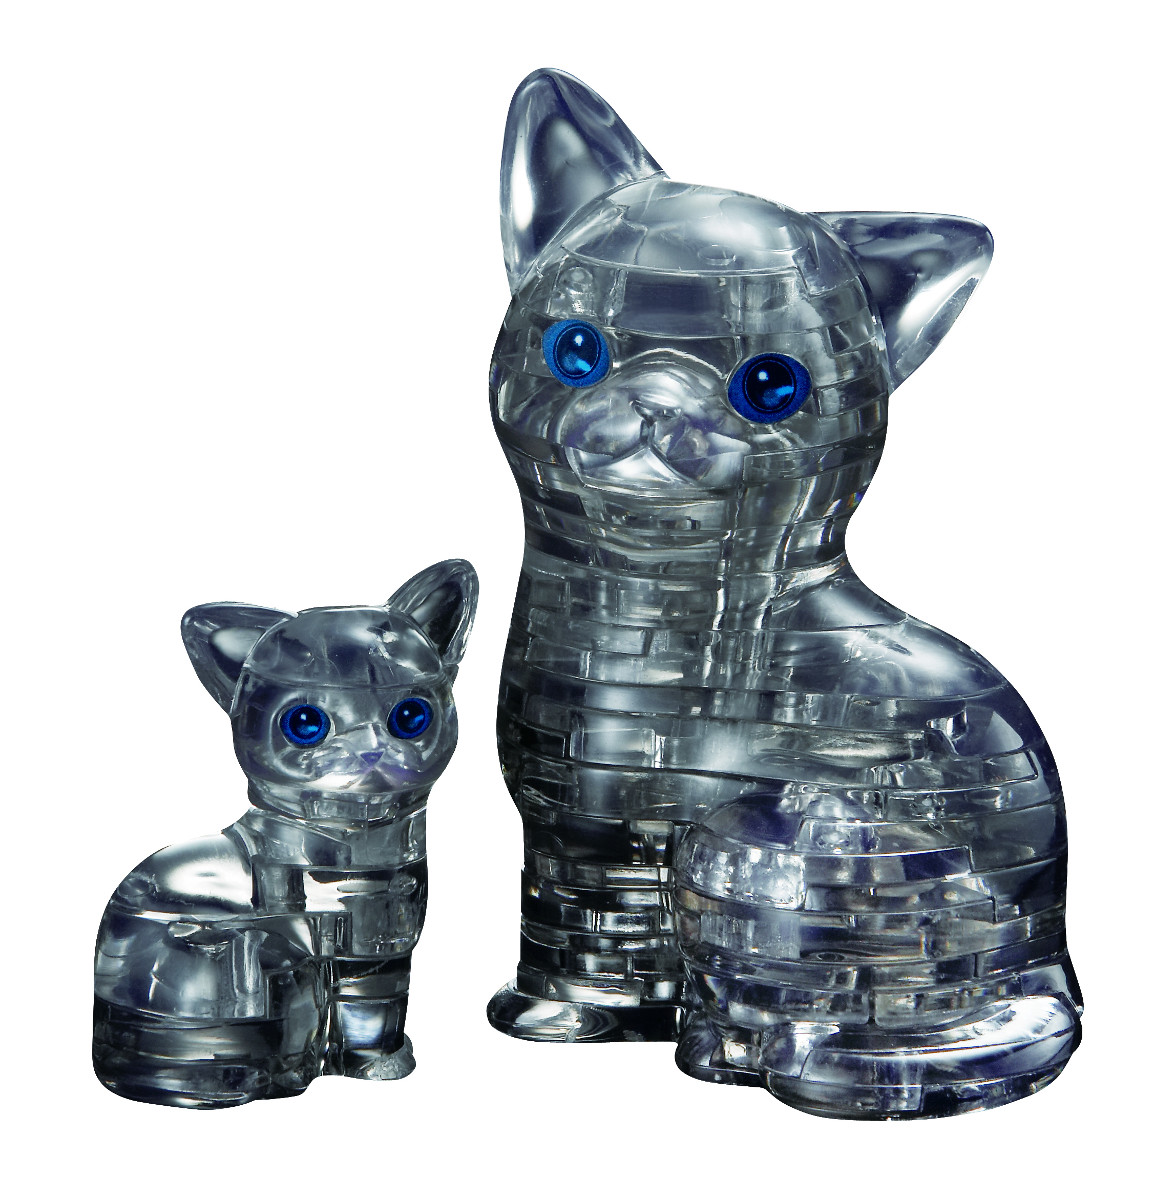 Cat & Kitten Black Cats Jigsaw Puzzle